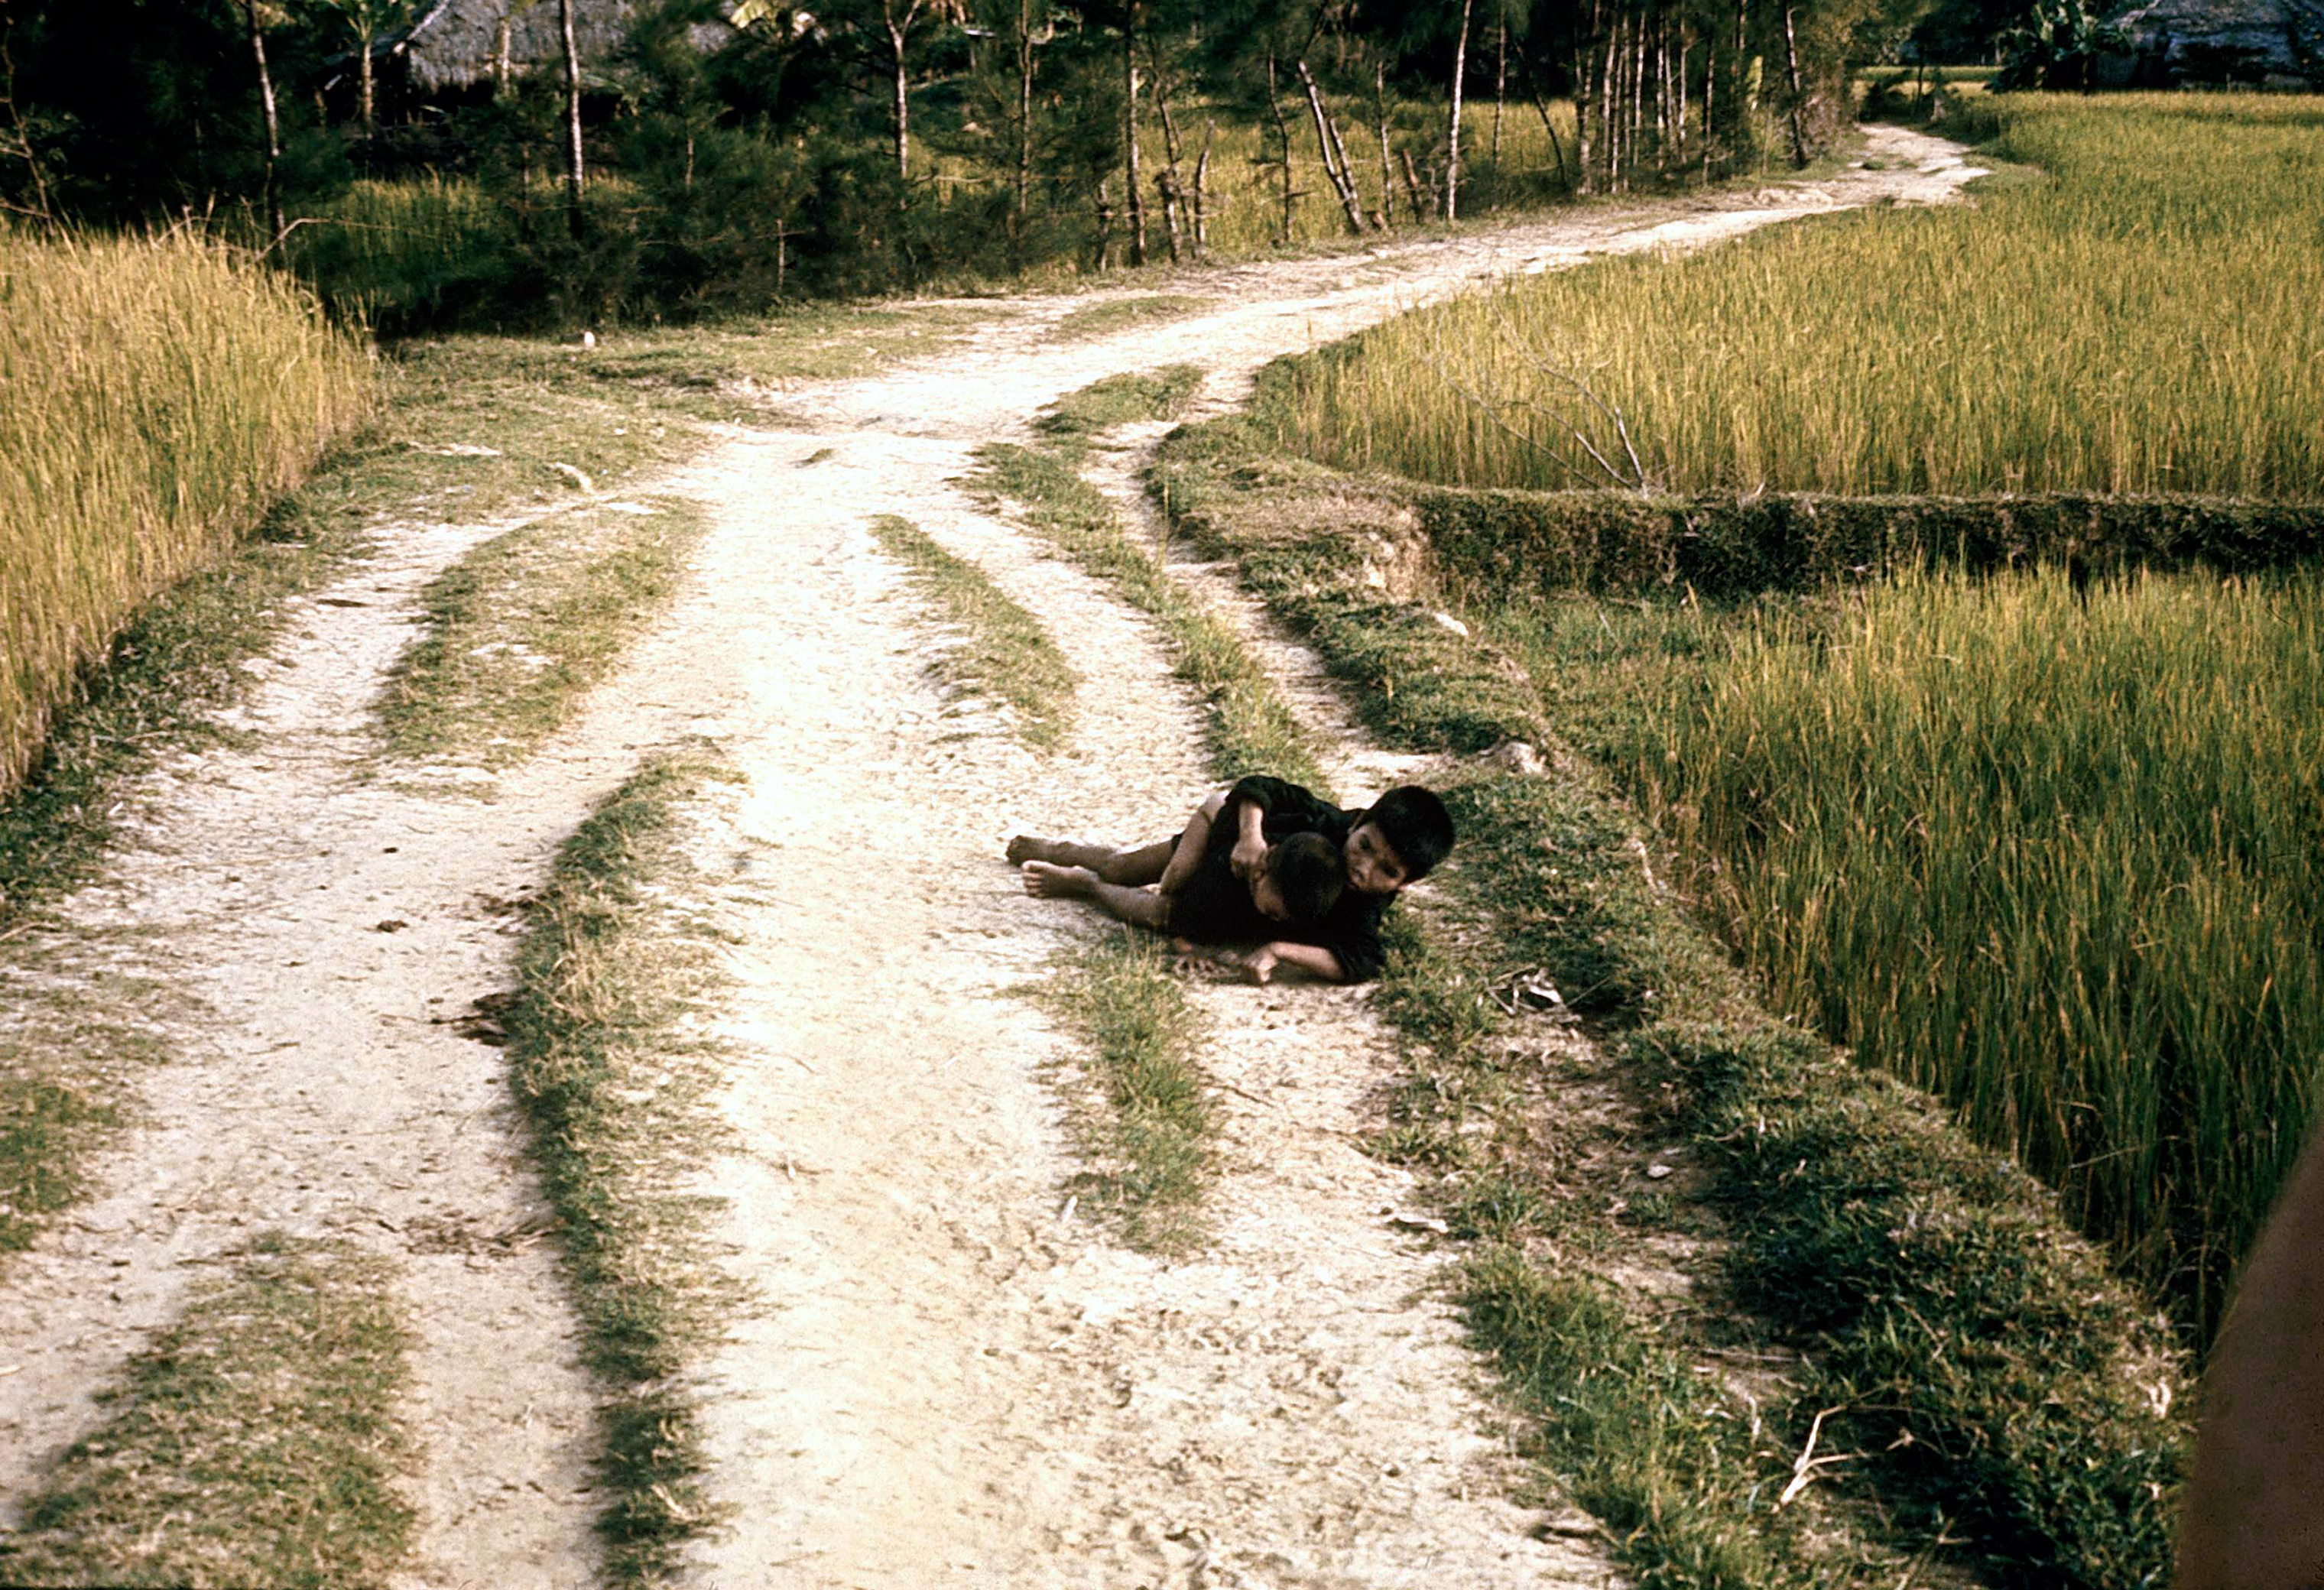 Two Vietnamese children on a road before they were shot by U.S. soldiers on March 16, 1968.